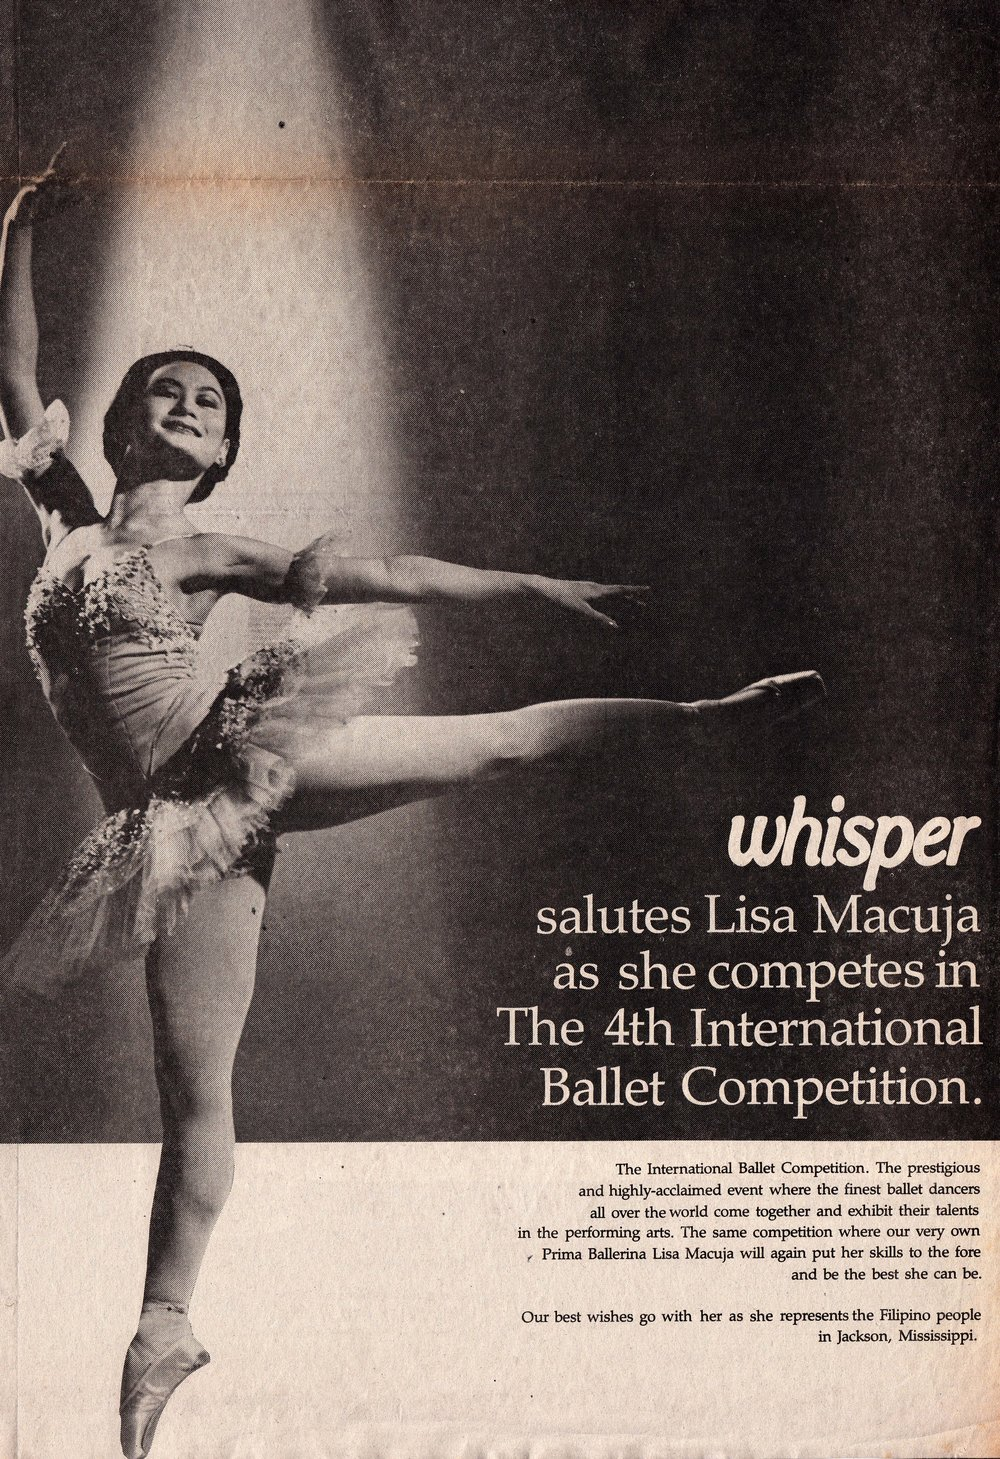 Just before she left the Philippines, Lisa had been announced as the endorser of Whisper. As a send-off to Lisa, the brand came out with newspaper ads wishing her well as she represented the country in the international competition. Whisper's nationwide promotional campaign later that year would contribute to the ballerina's pop appeal.